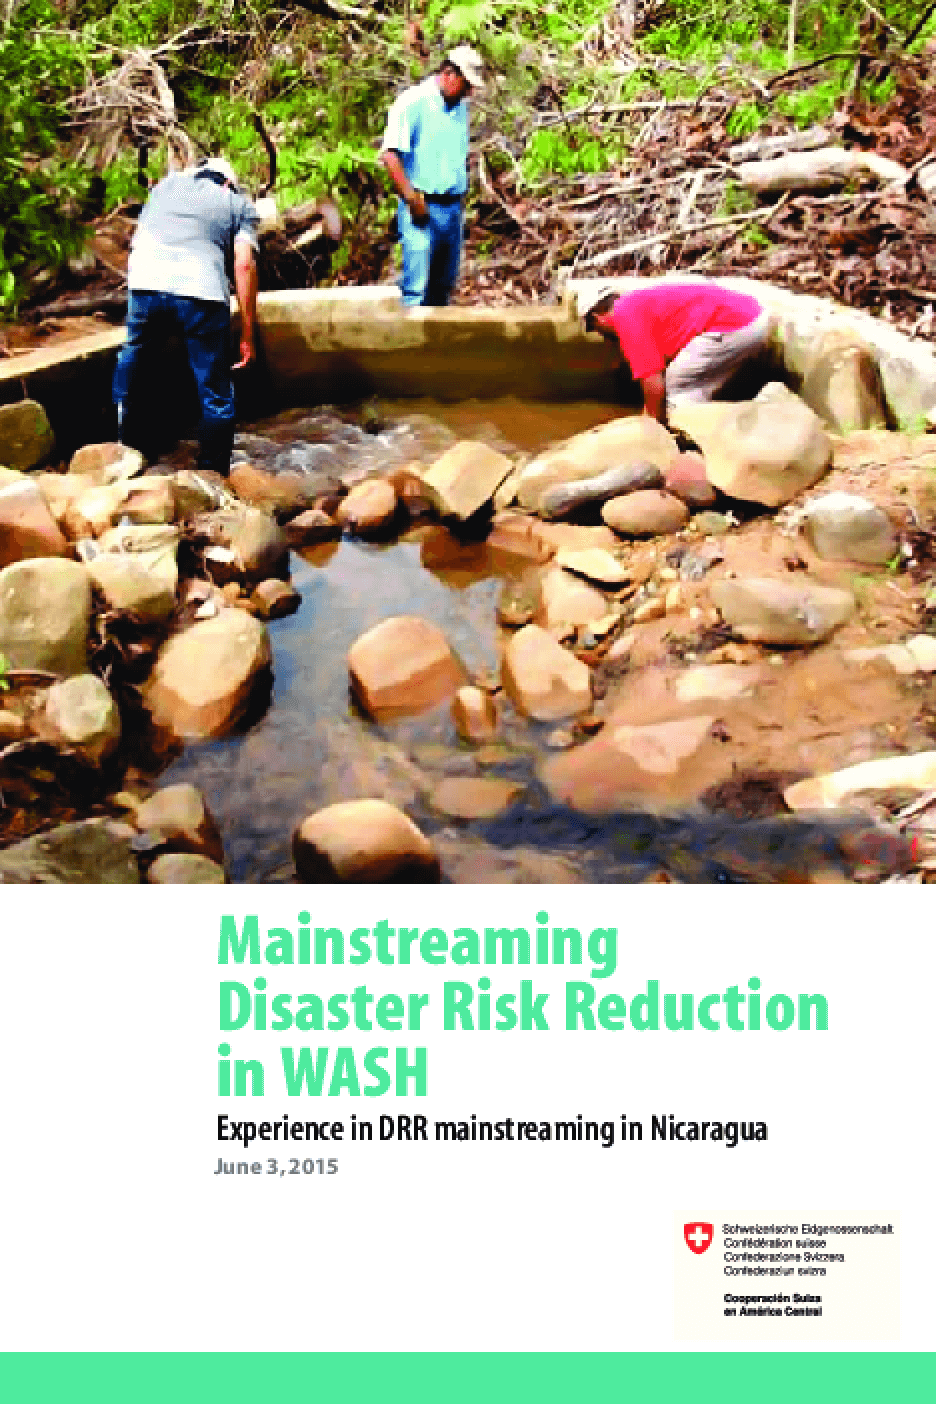 Mainstreaming Disaster Risk Reduction in WASH: Experience in DRR Mainstreaming in Nicaragua